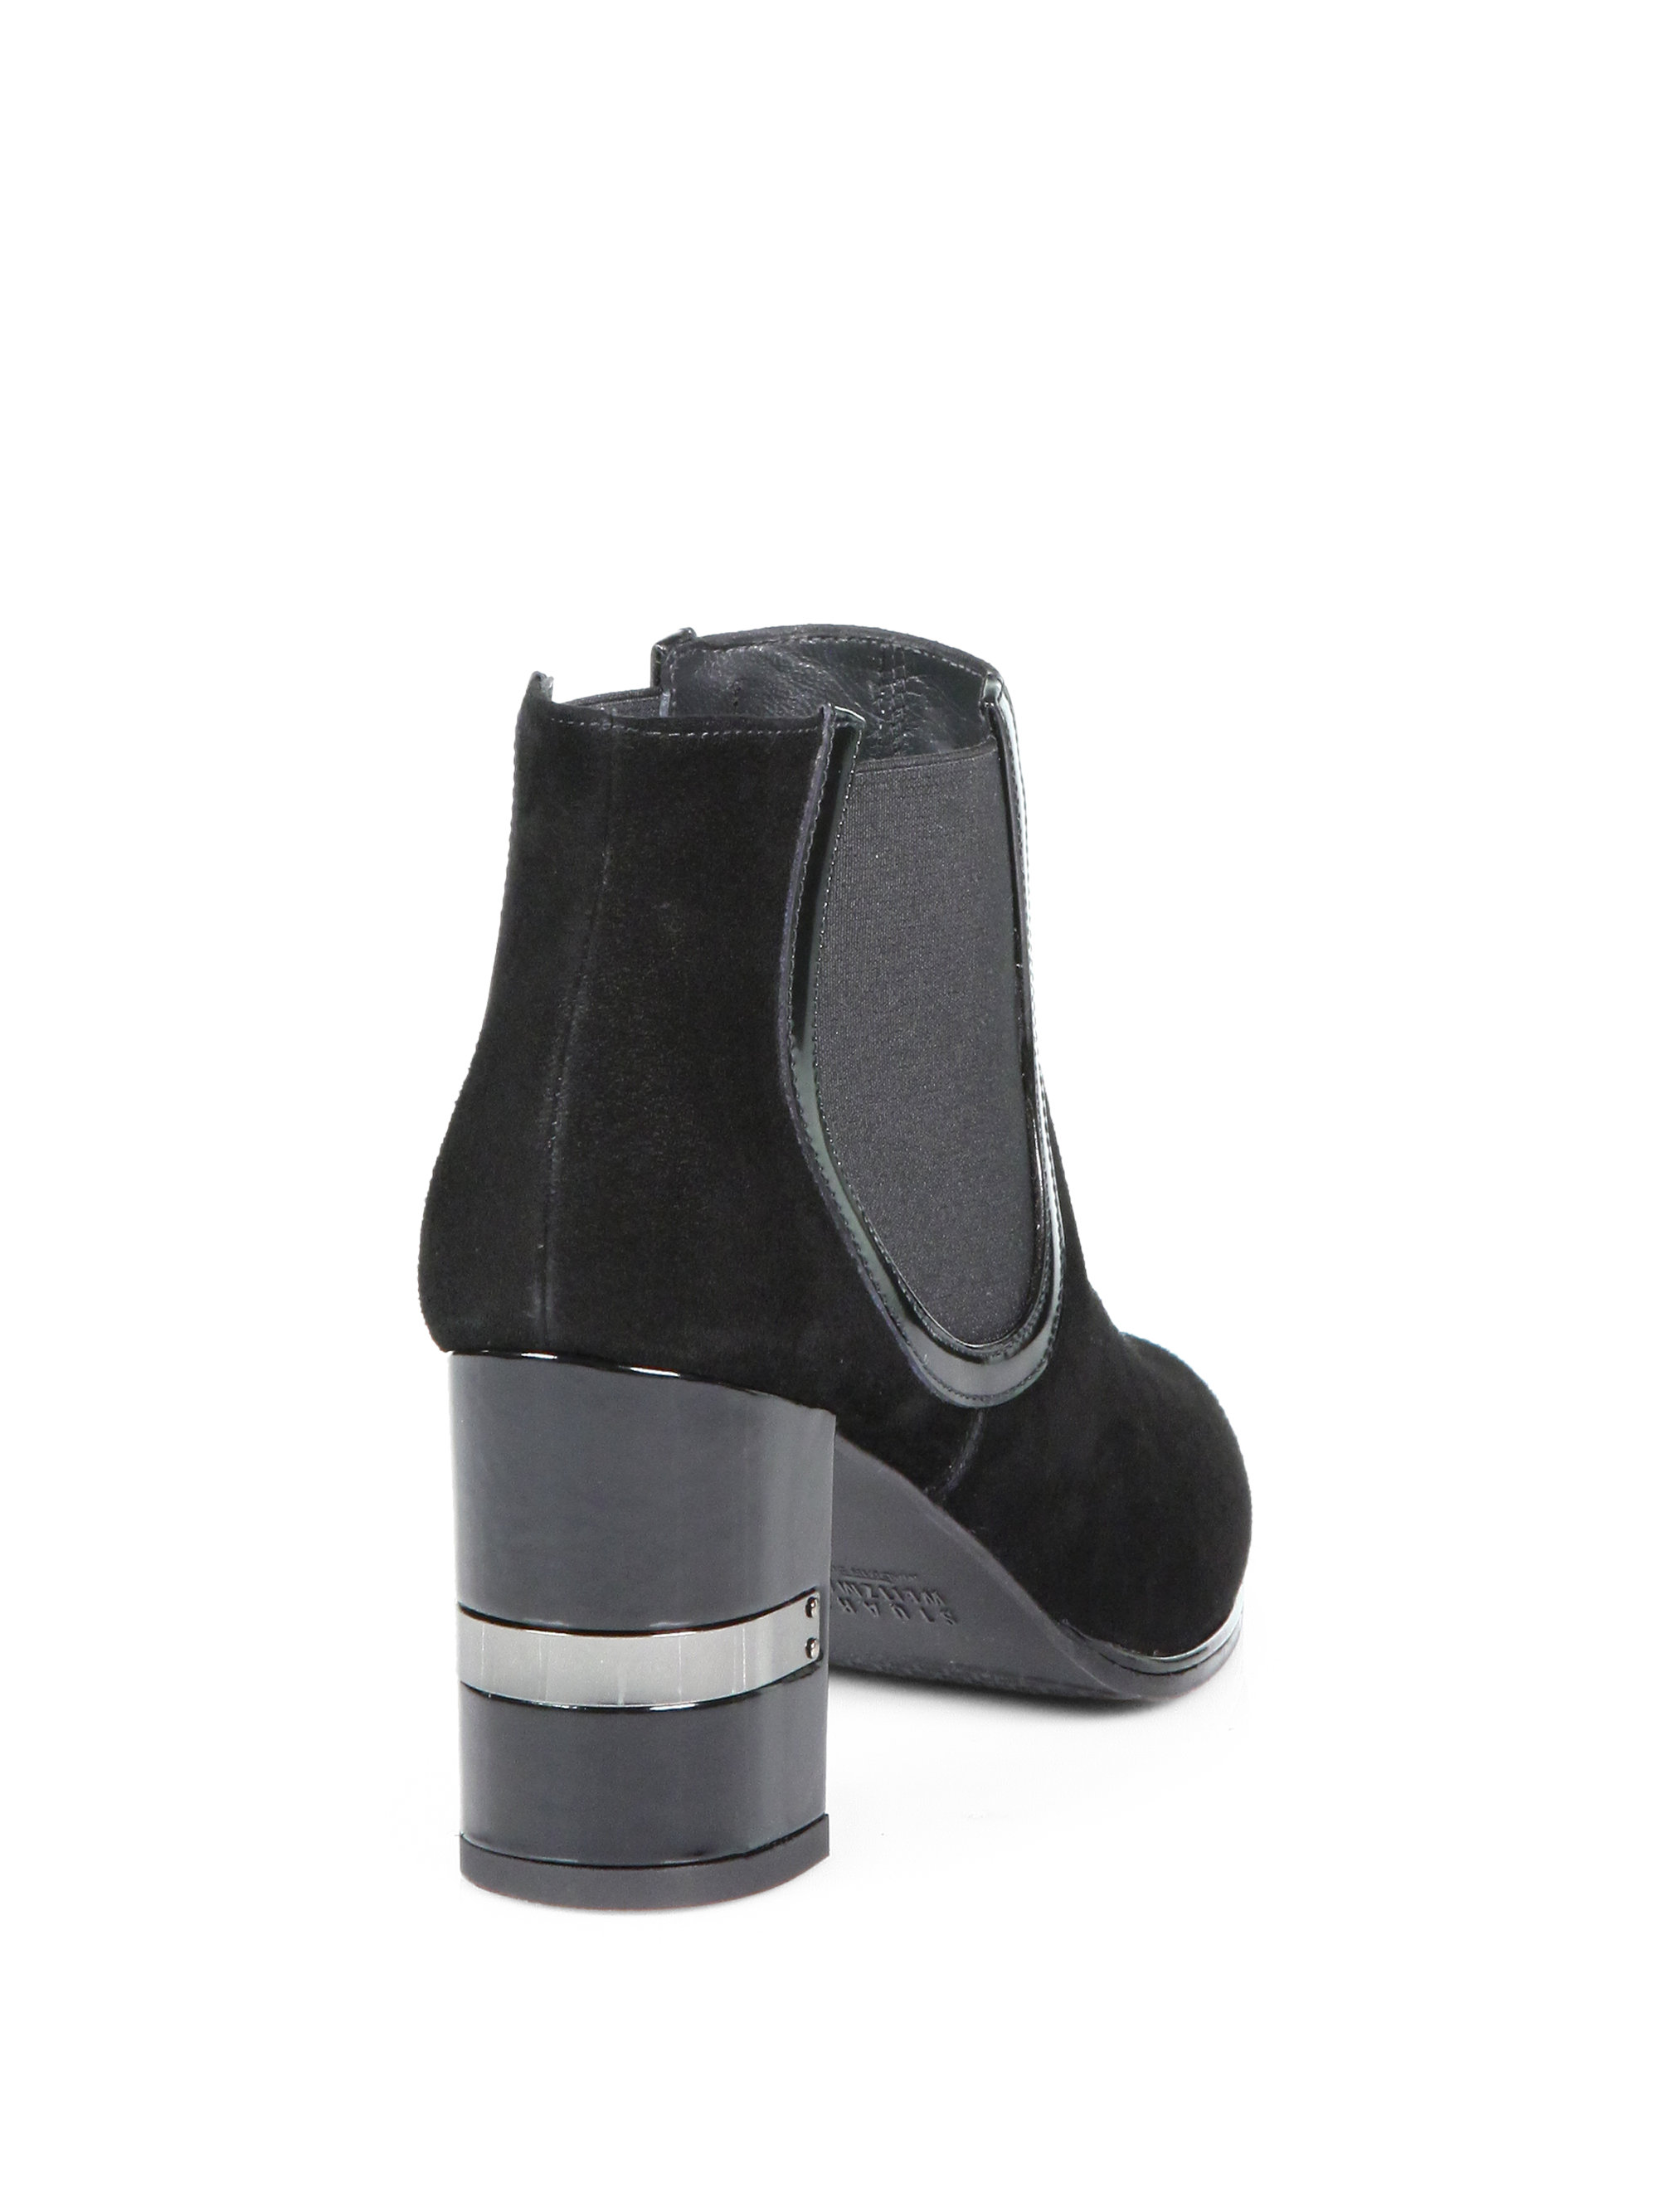 cheap sale 100% guaranteed Stuart Weitzman Nostress Suede Ankle Boots free shipping extremely free shipping the cheapest jKiKAd